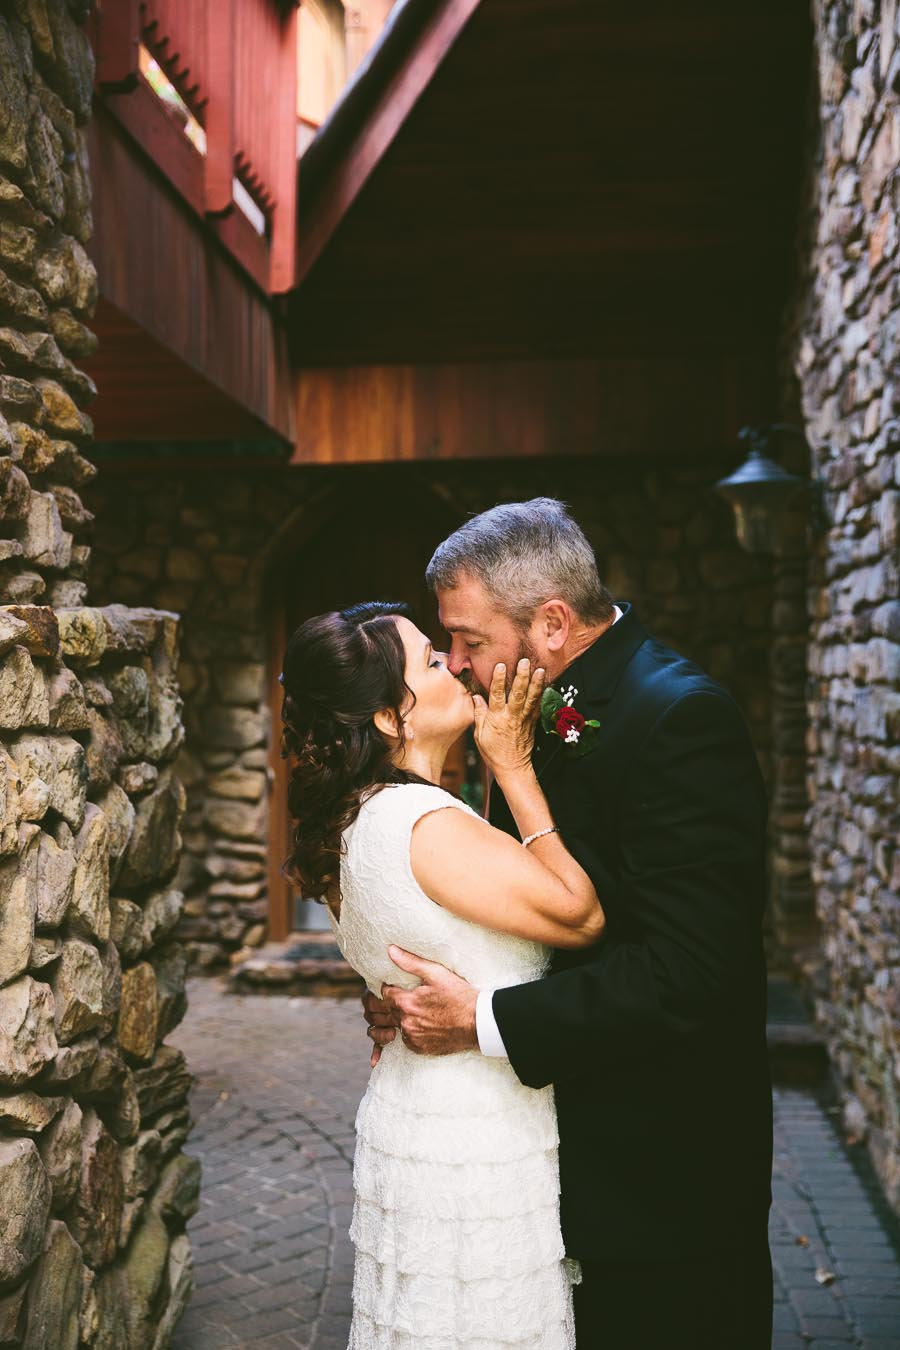 mohican-ohio-wedding-photography-landolls-castle-fall-27.jpg